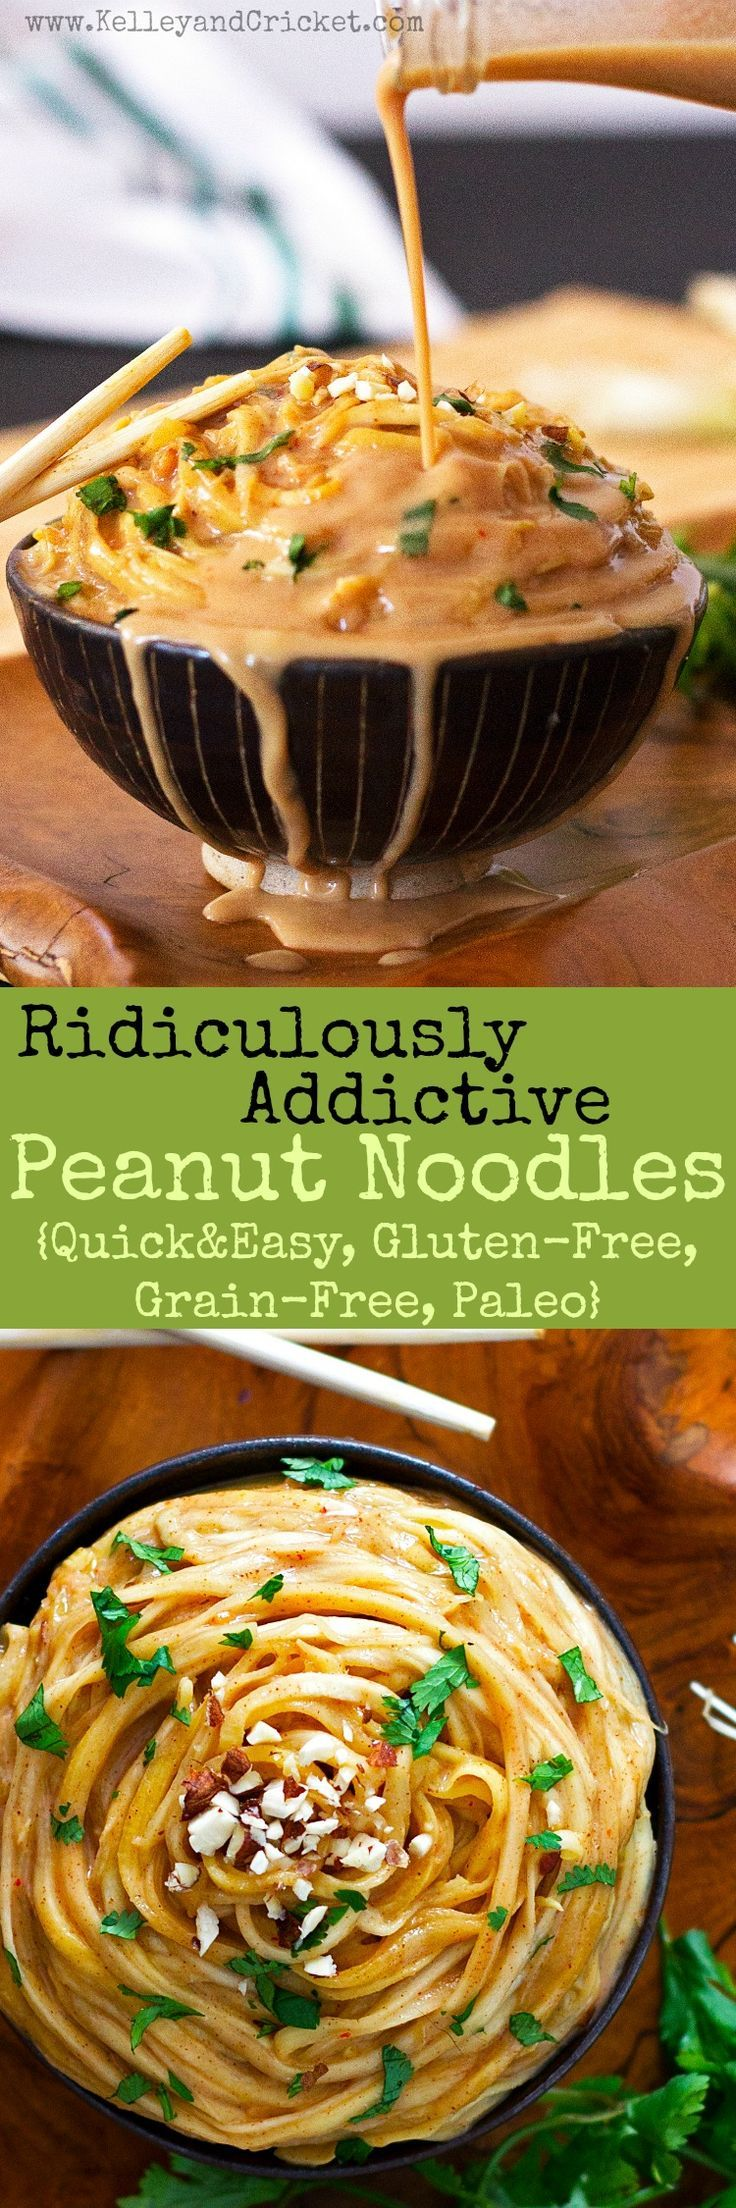 These ridiculously addictive peanut noodles are so good you wont be able to stop eating them, but dont worry- they are super healthy! Gluten-free, grain-free, and paleo they make a super quick and nutritious lunch and are ready in under 15 minutes!